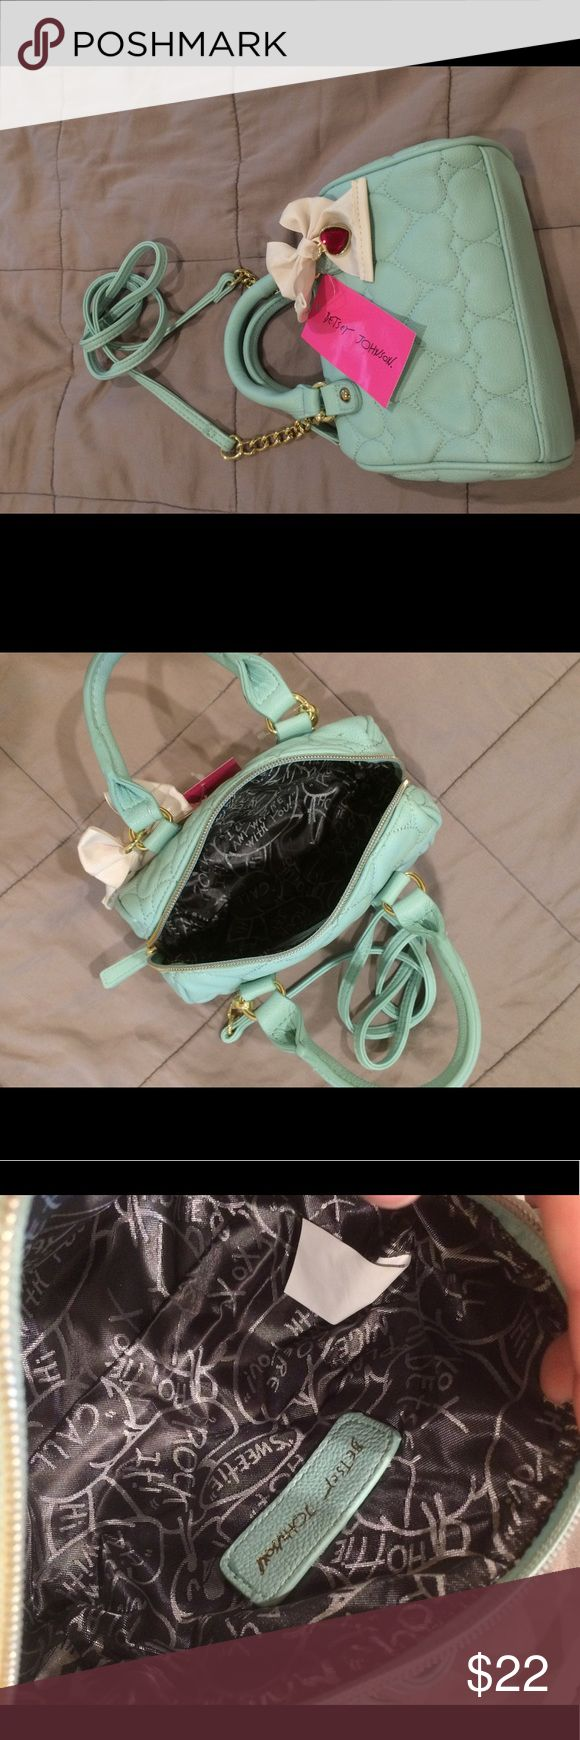 Mint purse Mint Betsy Johnson purse with quilted look, gold chain accents, removable strap, and cream bow. Betsey Johnson Bags Crossbody Bags